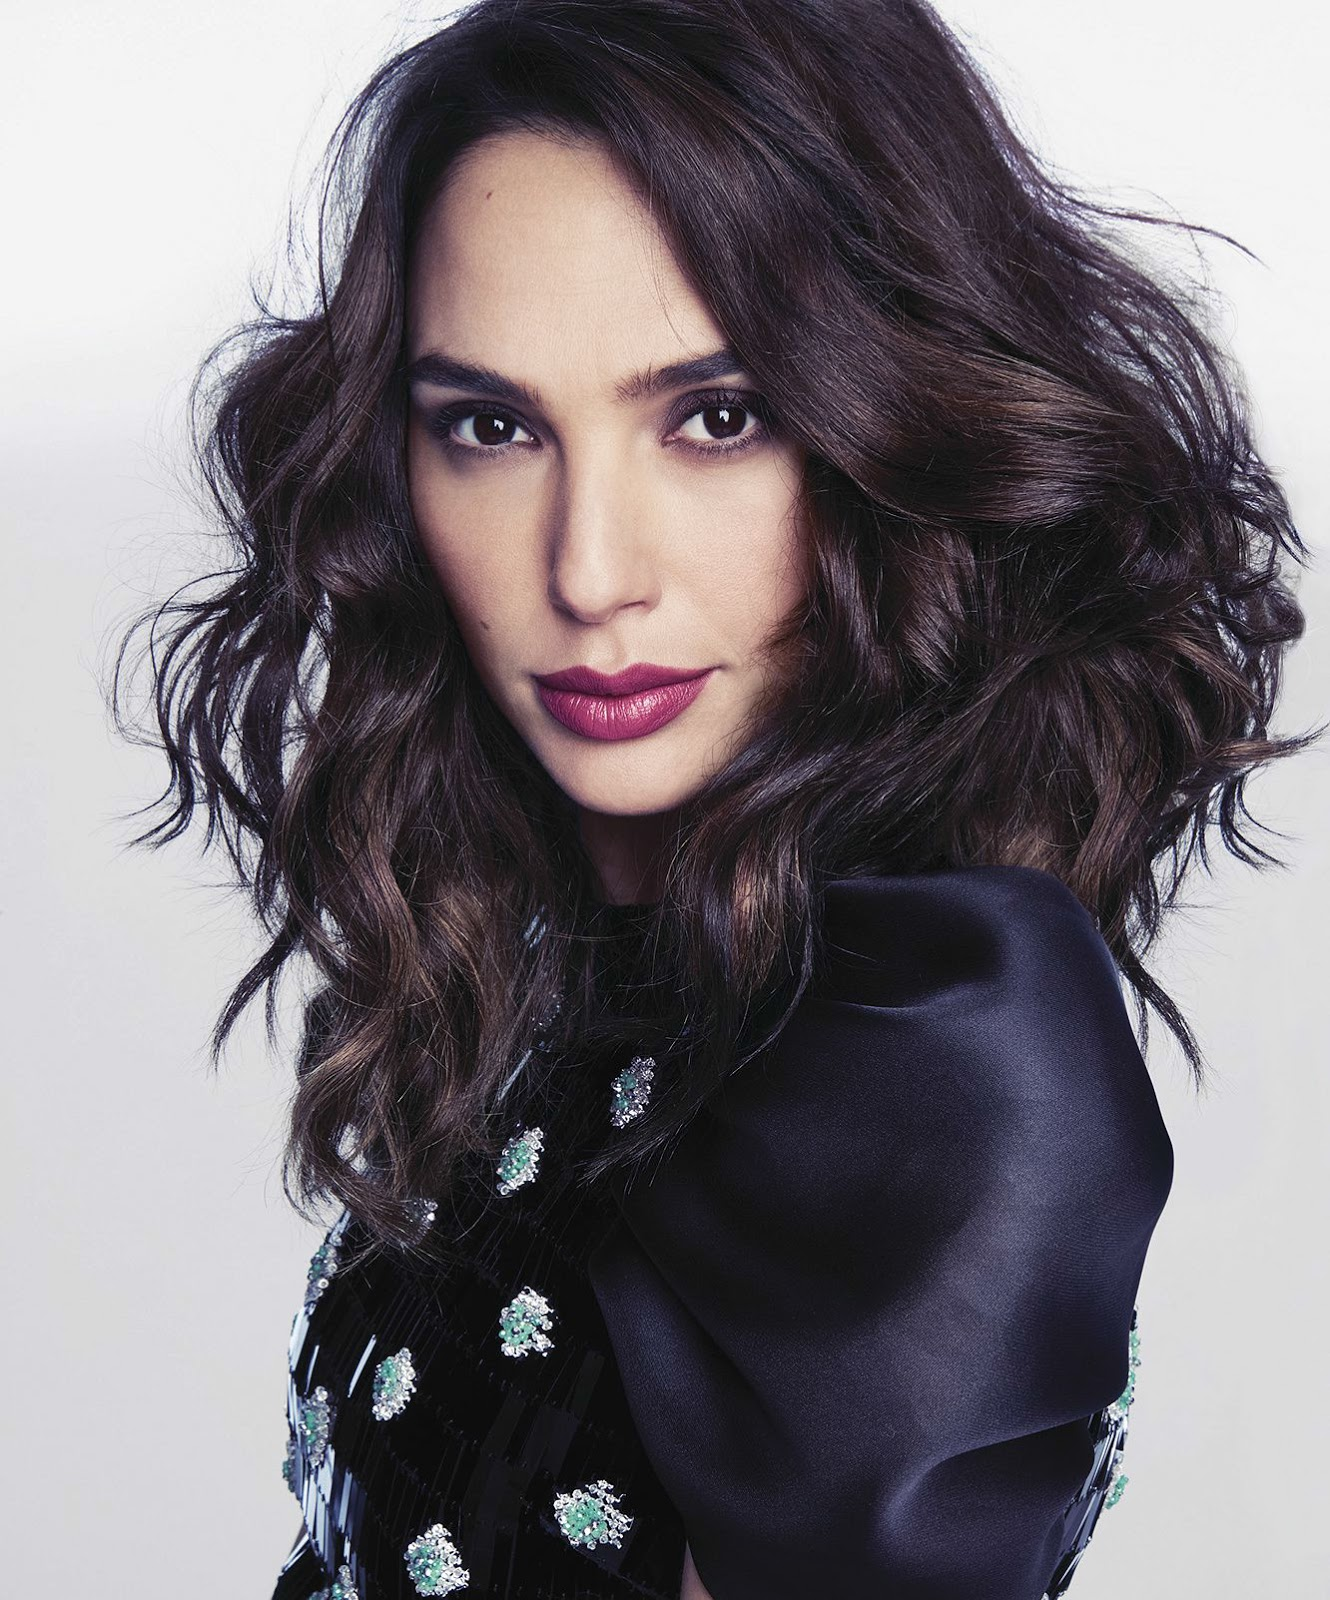 Fall And Winter Wallpaper Smile Gal Gadot In Marie Claire Us June 2017 By Tesh